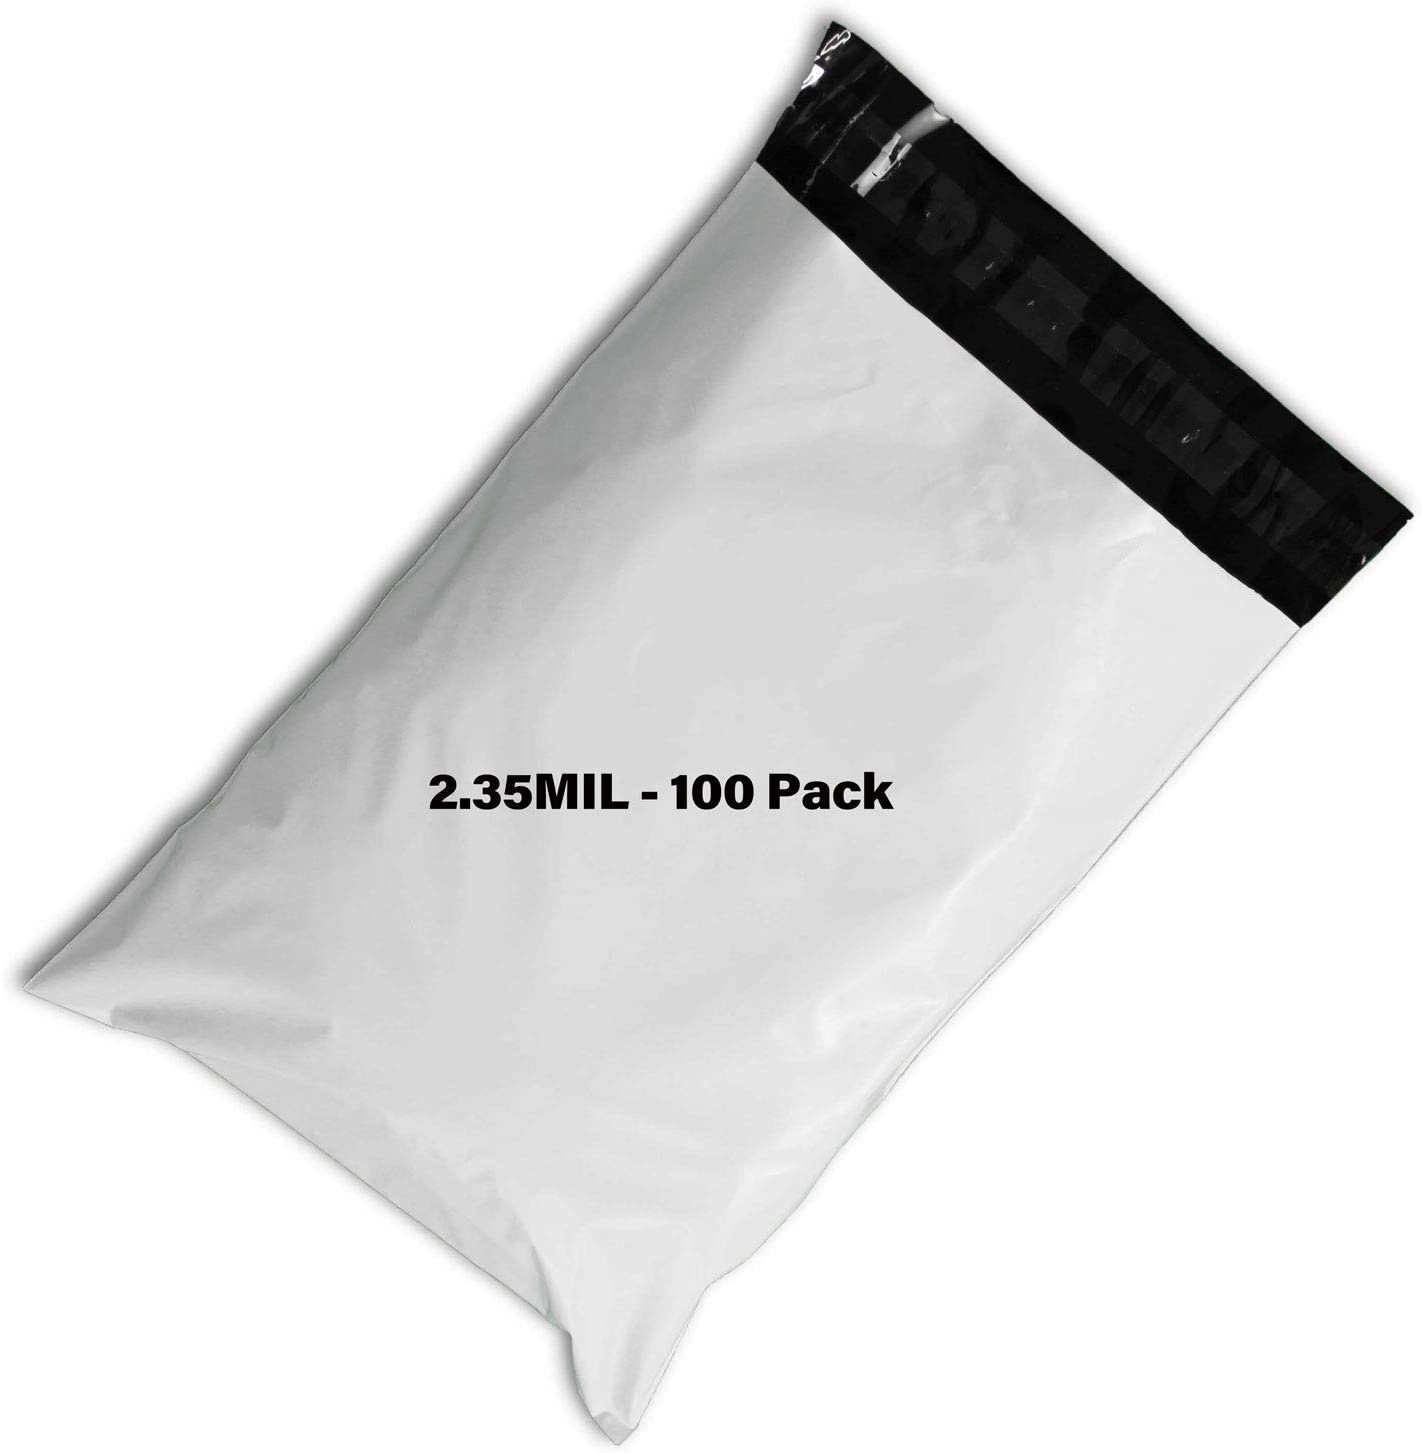 100 Pcs 9x12 Poly Bag 2.35MIL Mailers Envelopes Shipping Bags, Self Adhesive, Waterproof, and Tear-Proof Postage Poly-envelopes, Privacy Shielded